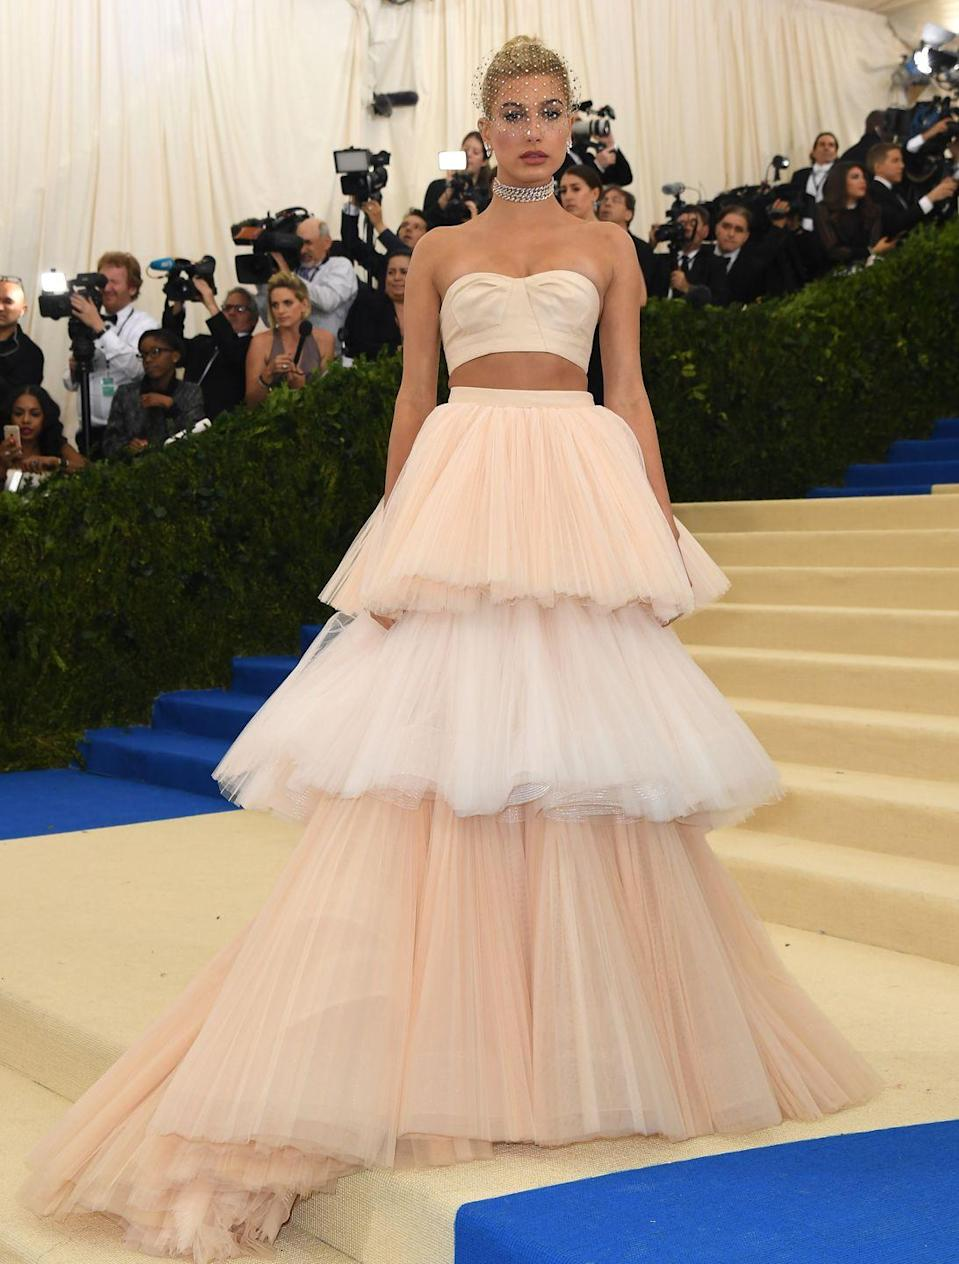 "<p>Hailey Baldwin<span class=""redactor-invisible-space""> wore a Carolina Herrera crop top and matching tiered tulle skirt to attend the 2017 Met Gala.</span></p>"